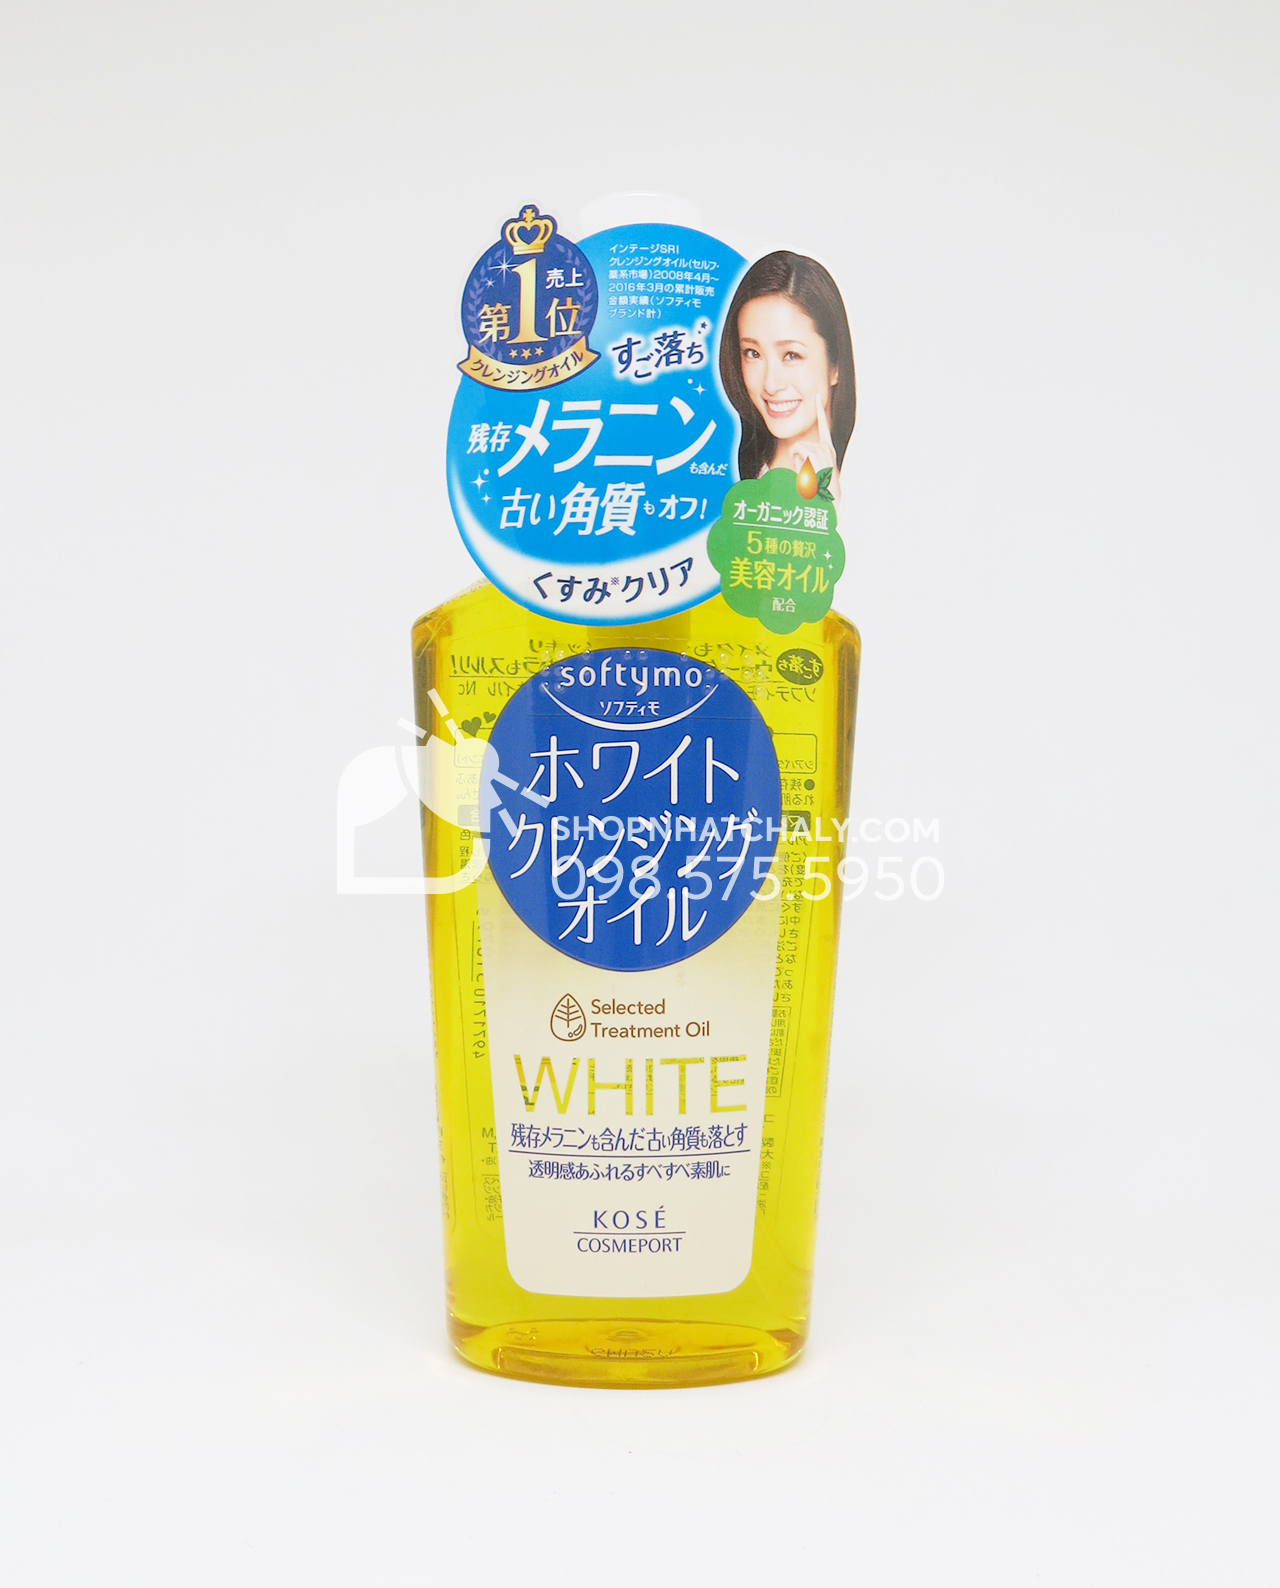 Dầu tẩy trang Kose Softymo White Cleansing Oil